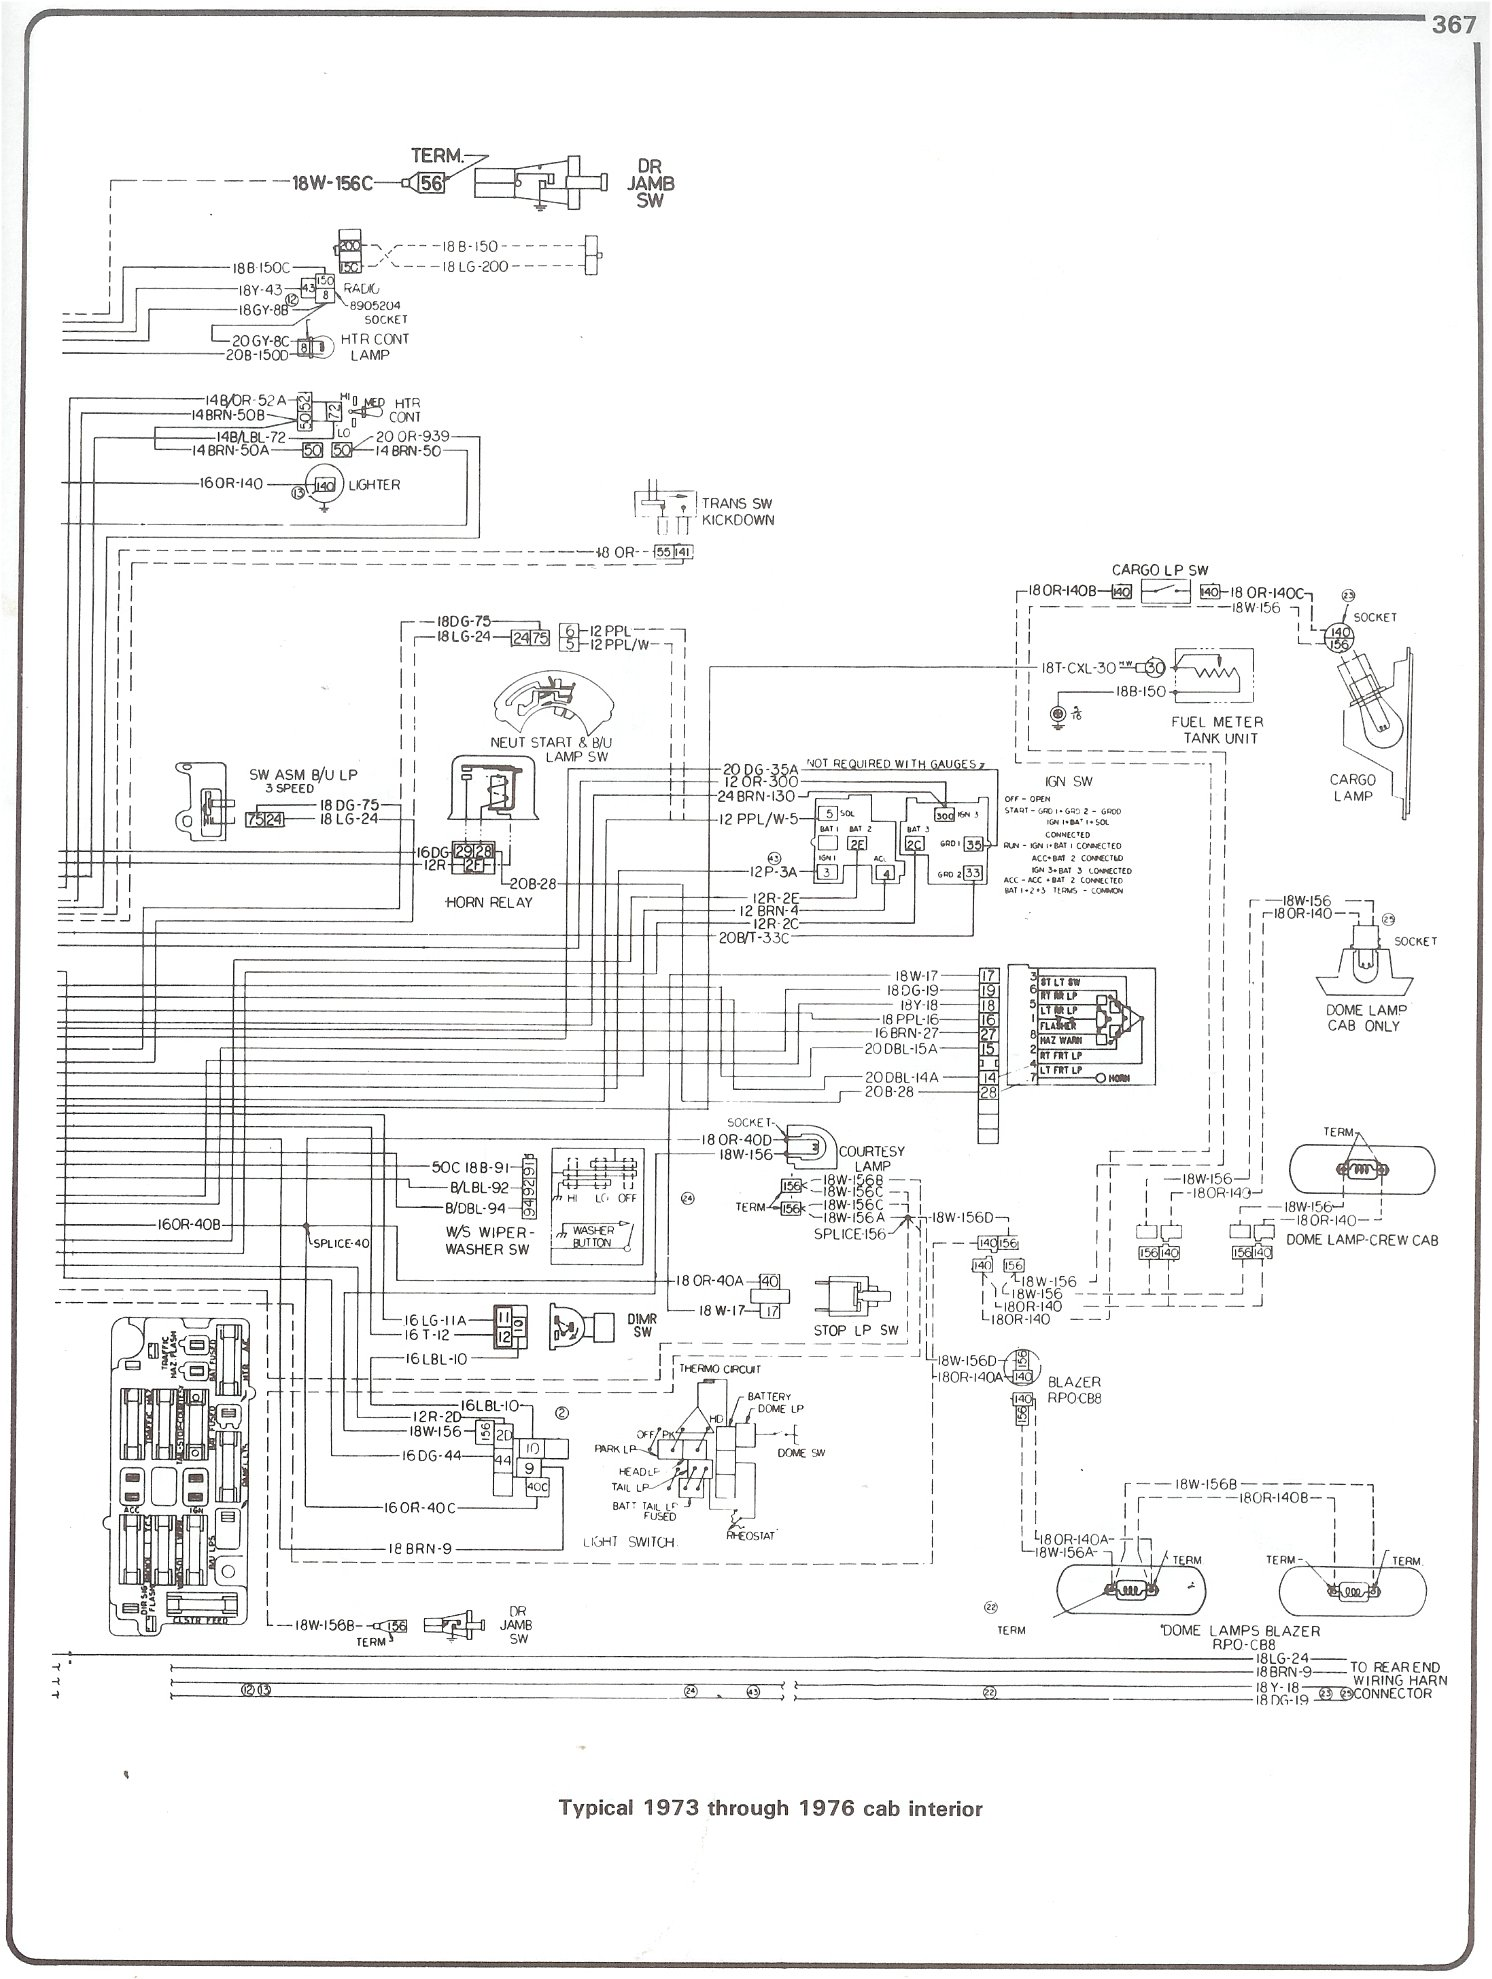 complete 73 87 wiring diagrams rh forum 73 87chevytrucks com Car Air Conditioner Wiring Diagram Dodge Dakota Wiring Diagrams